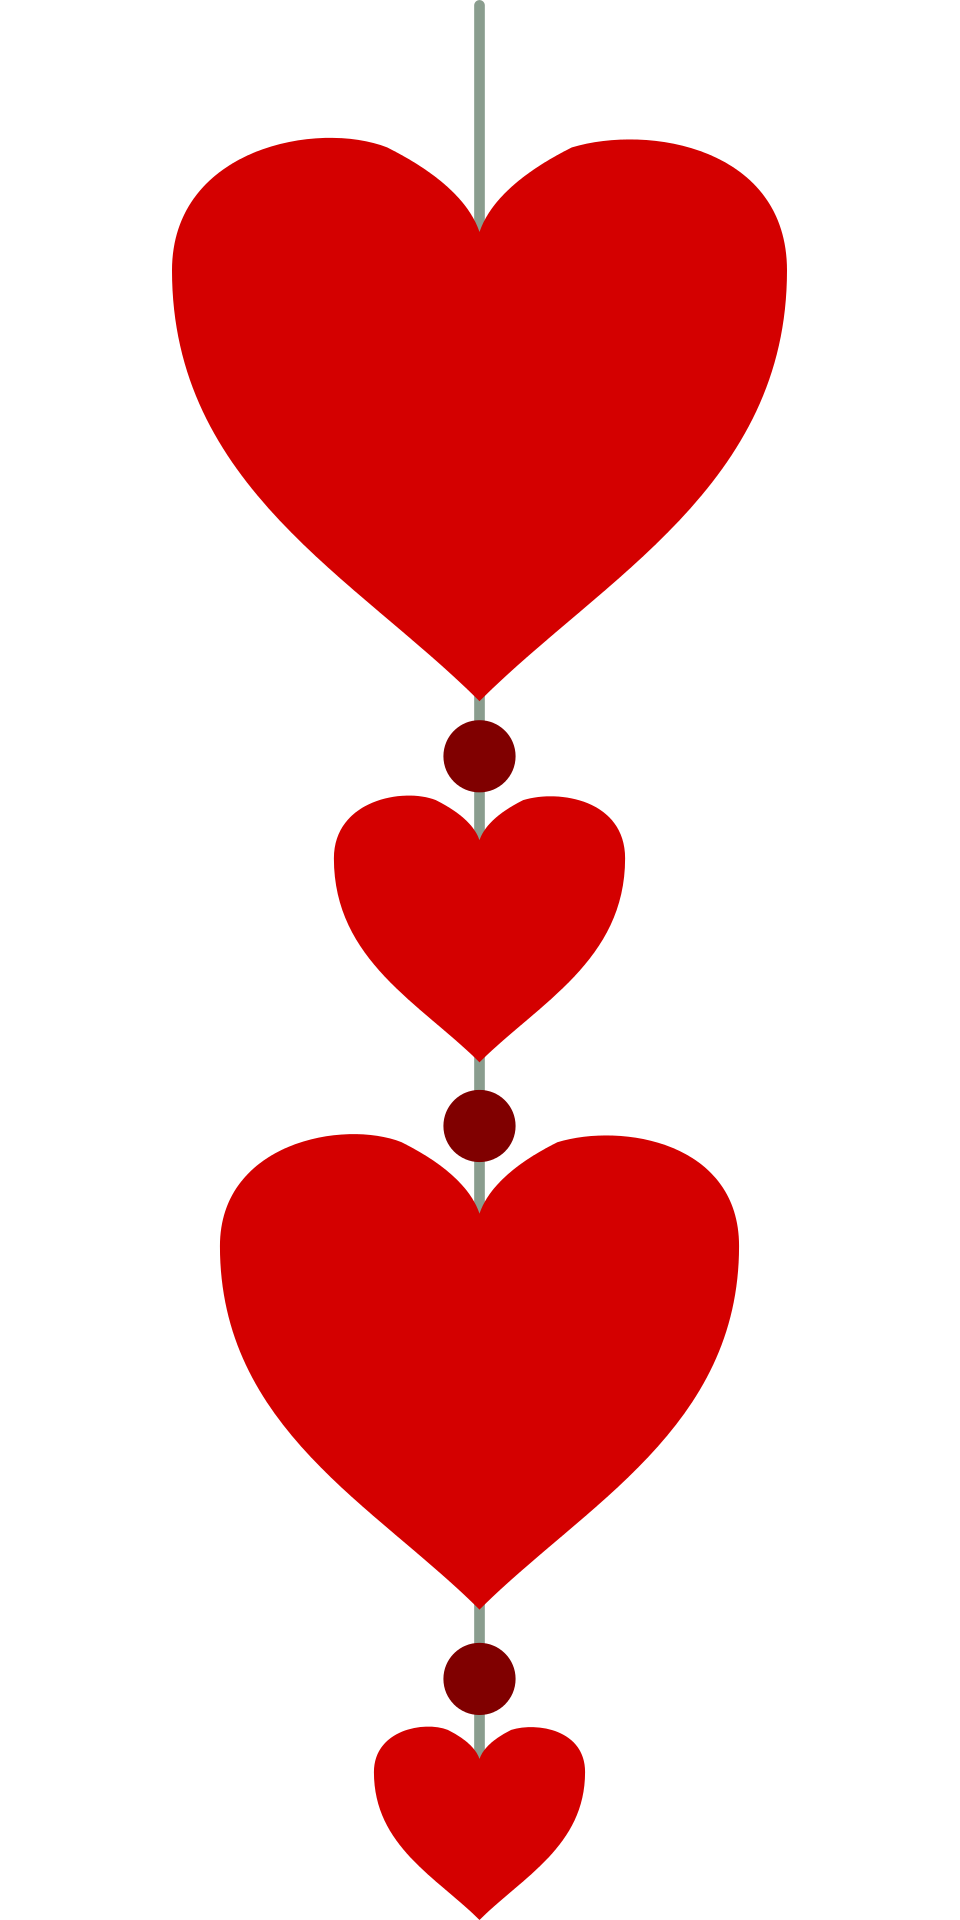 Hearts in a Vertical Line